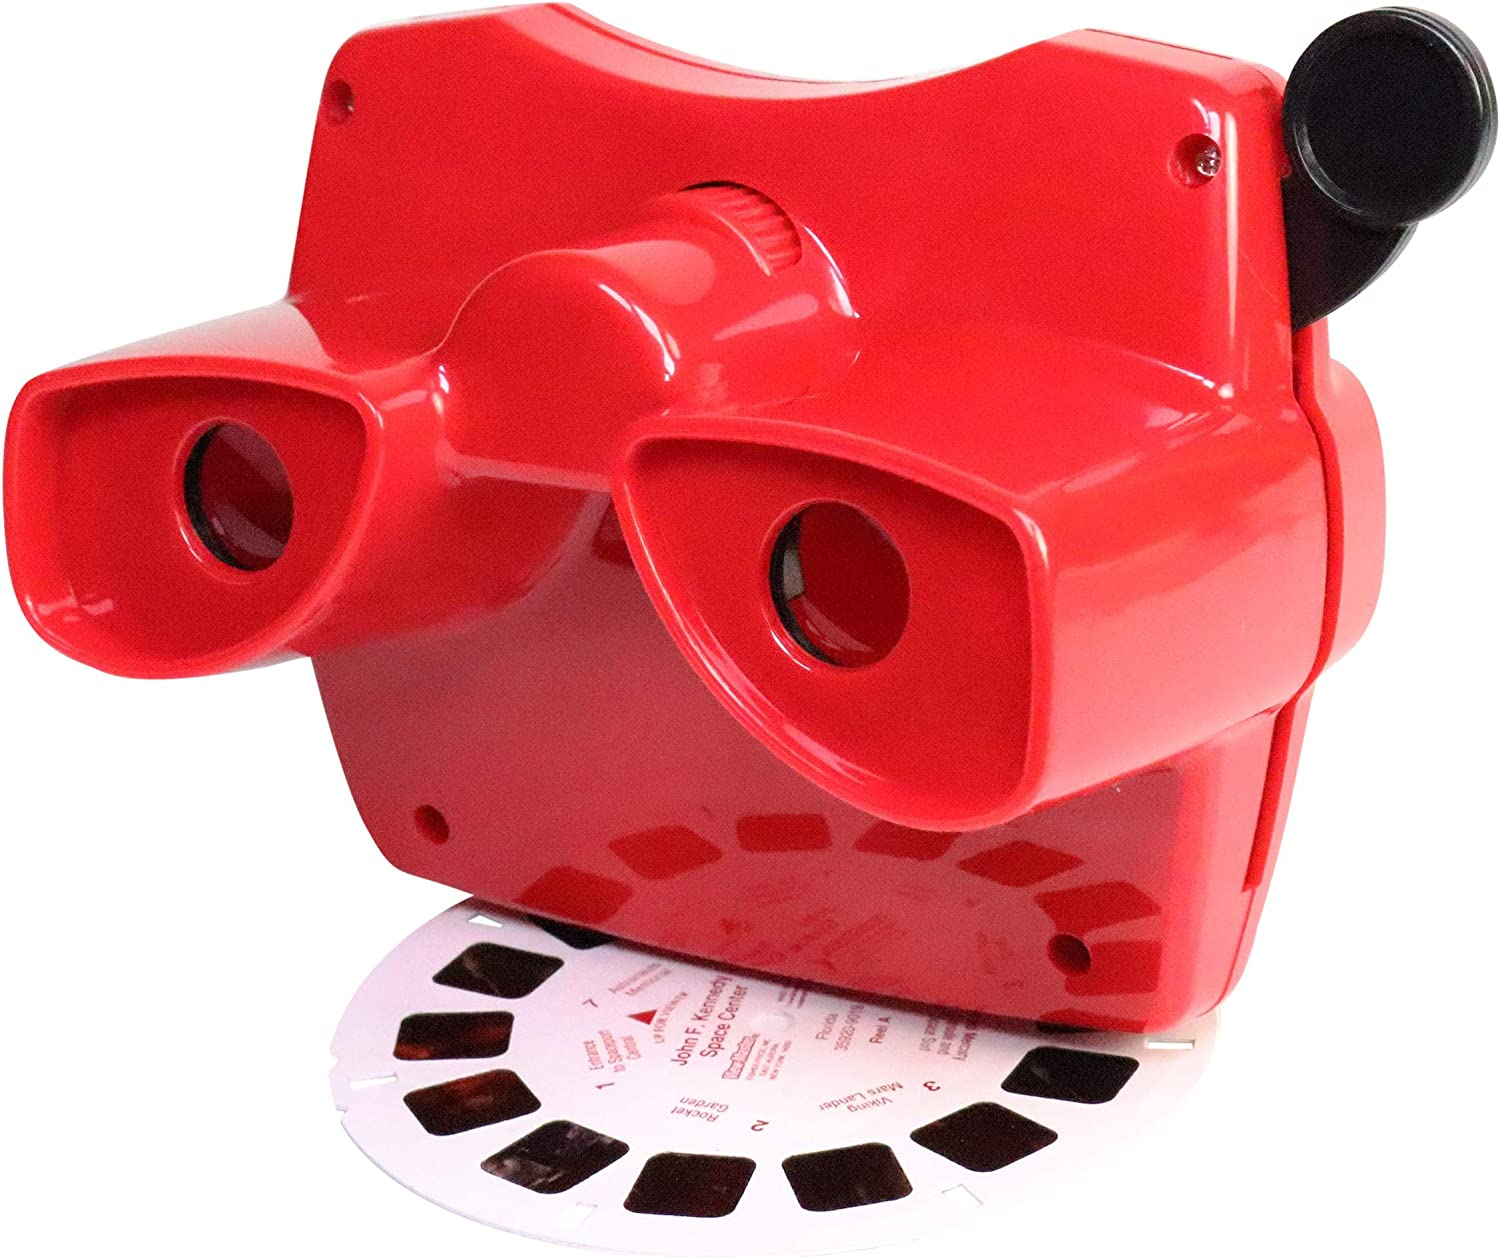 Classic Viewmaster Viewer 3D Model L bei Red